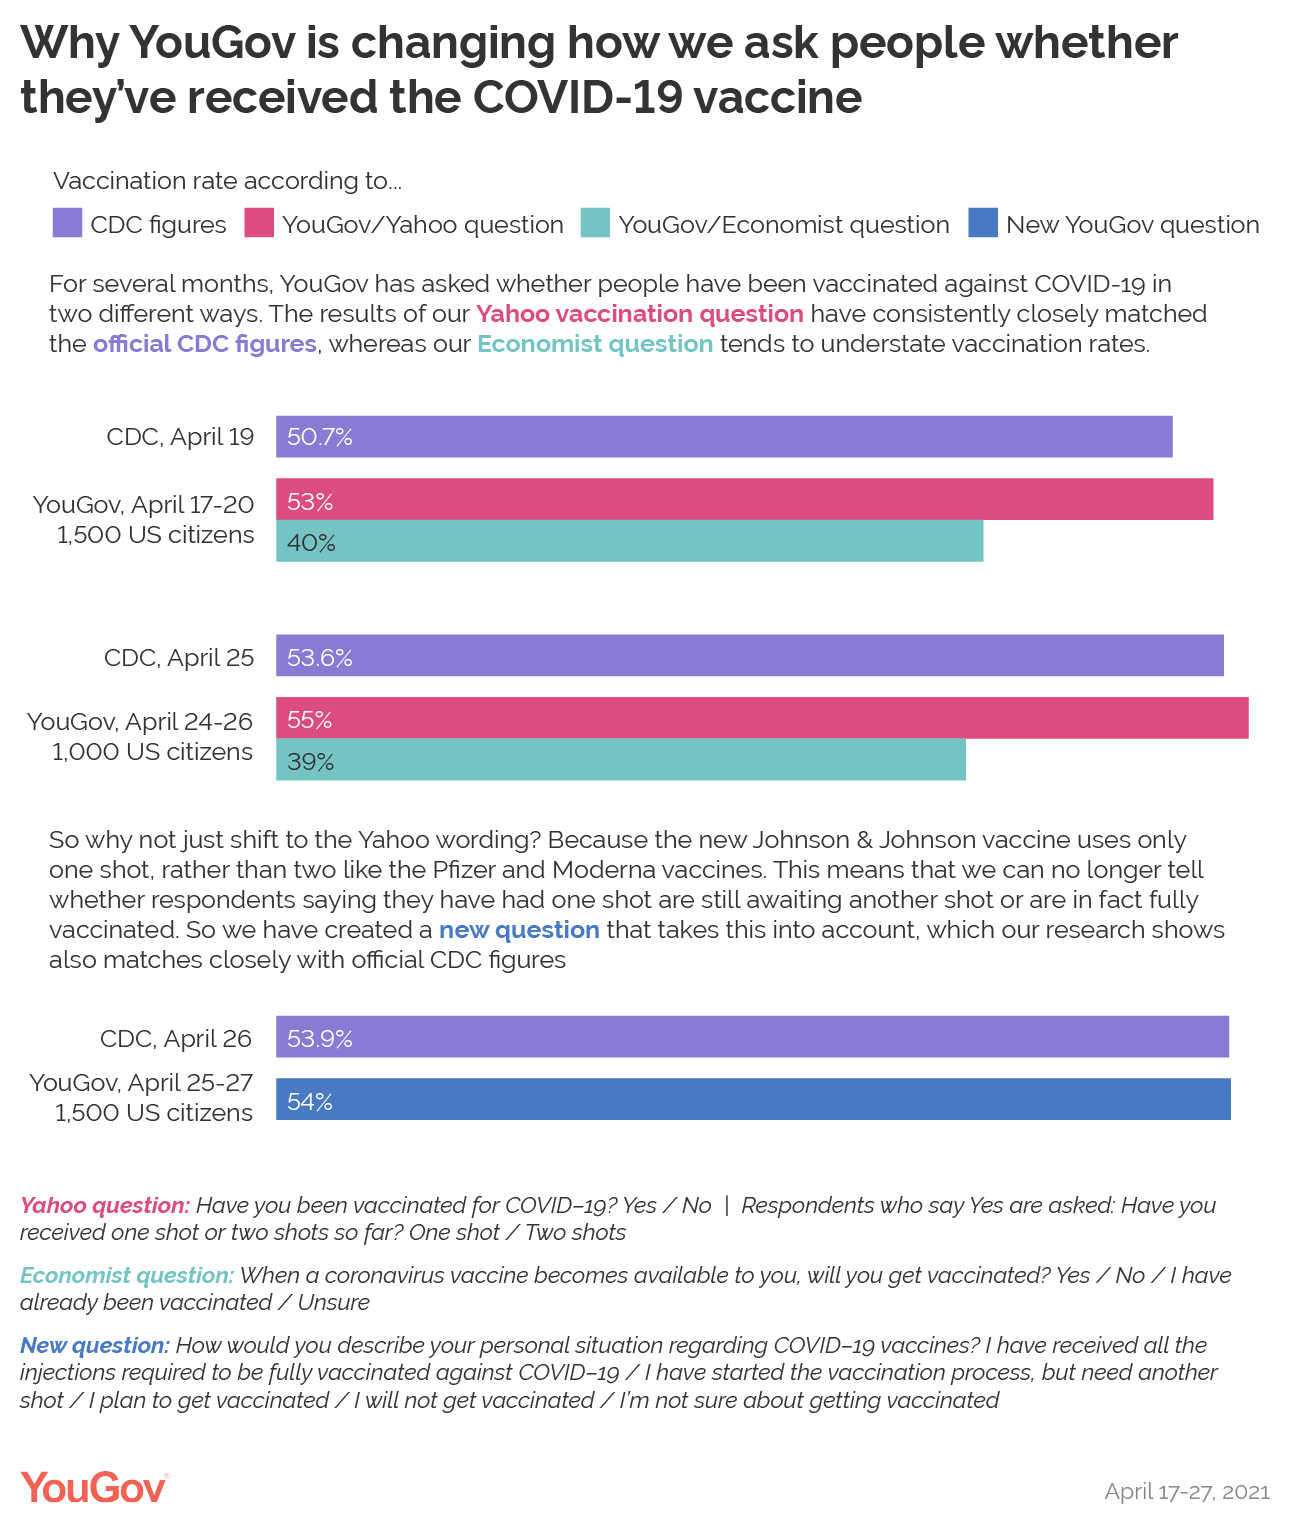 Why YouGov is changing how we ask people whether or not they have been vaccinated